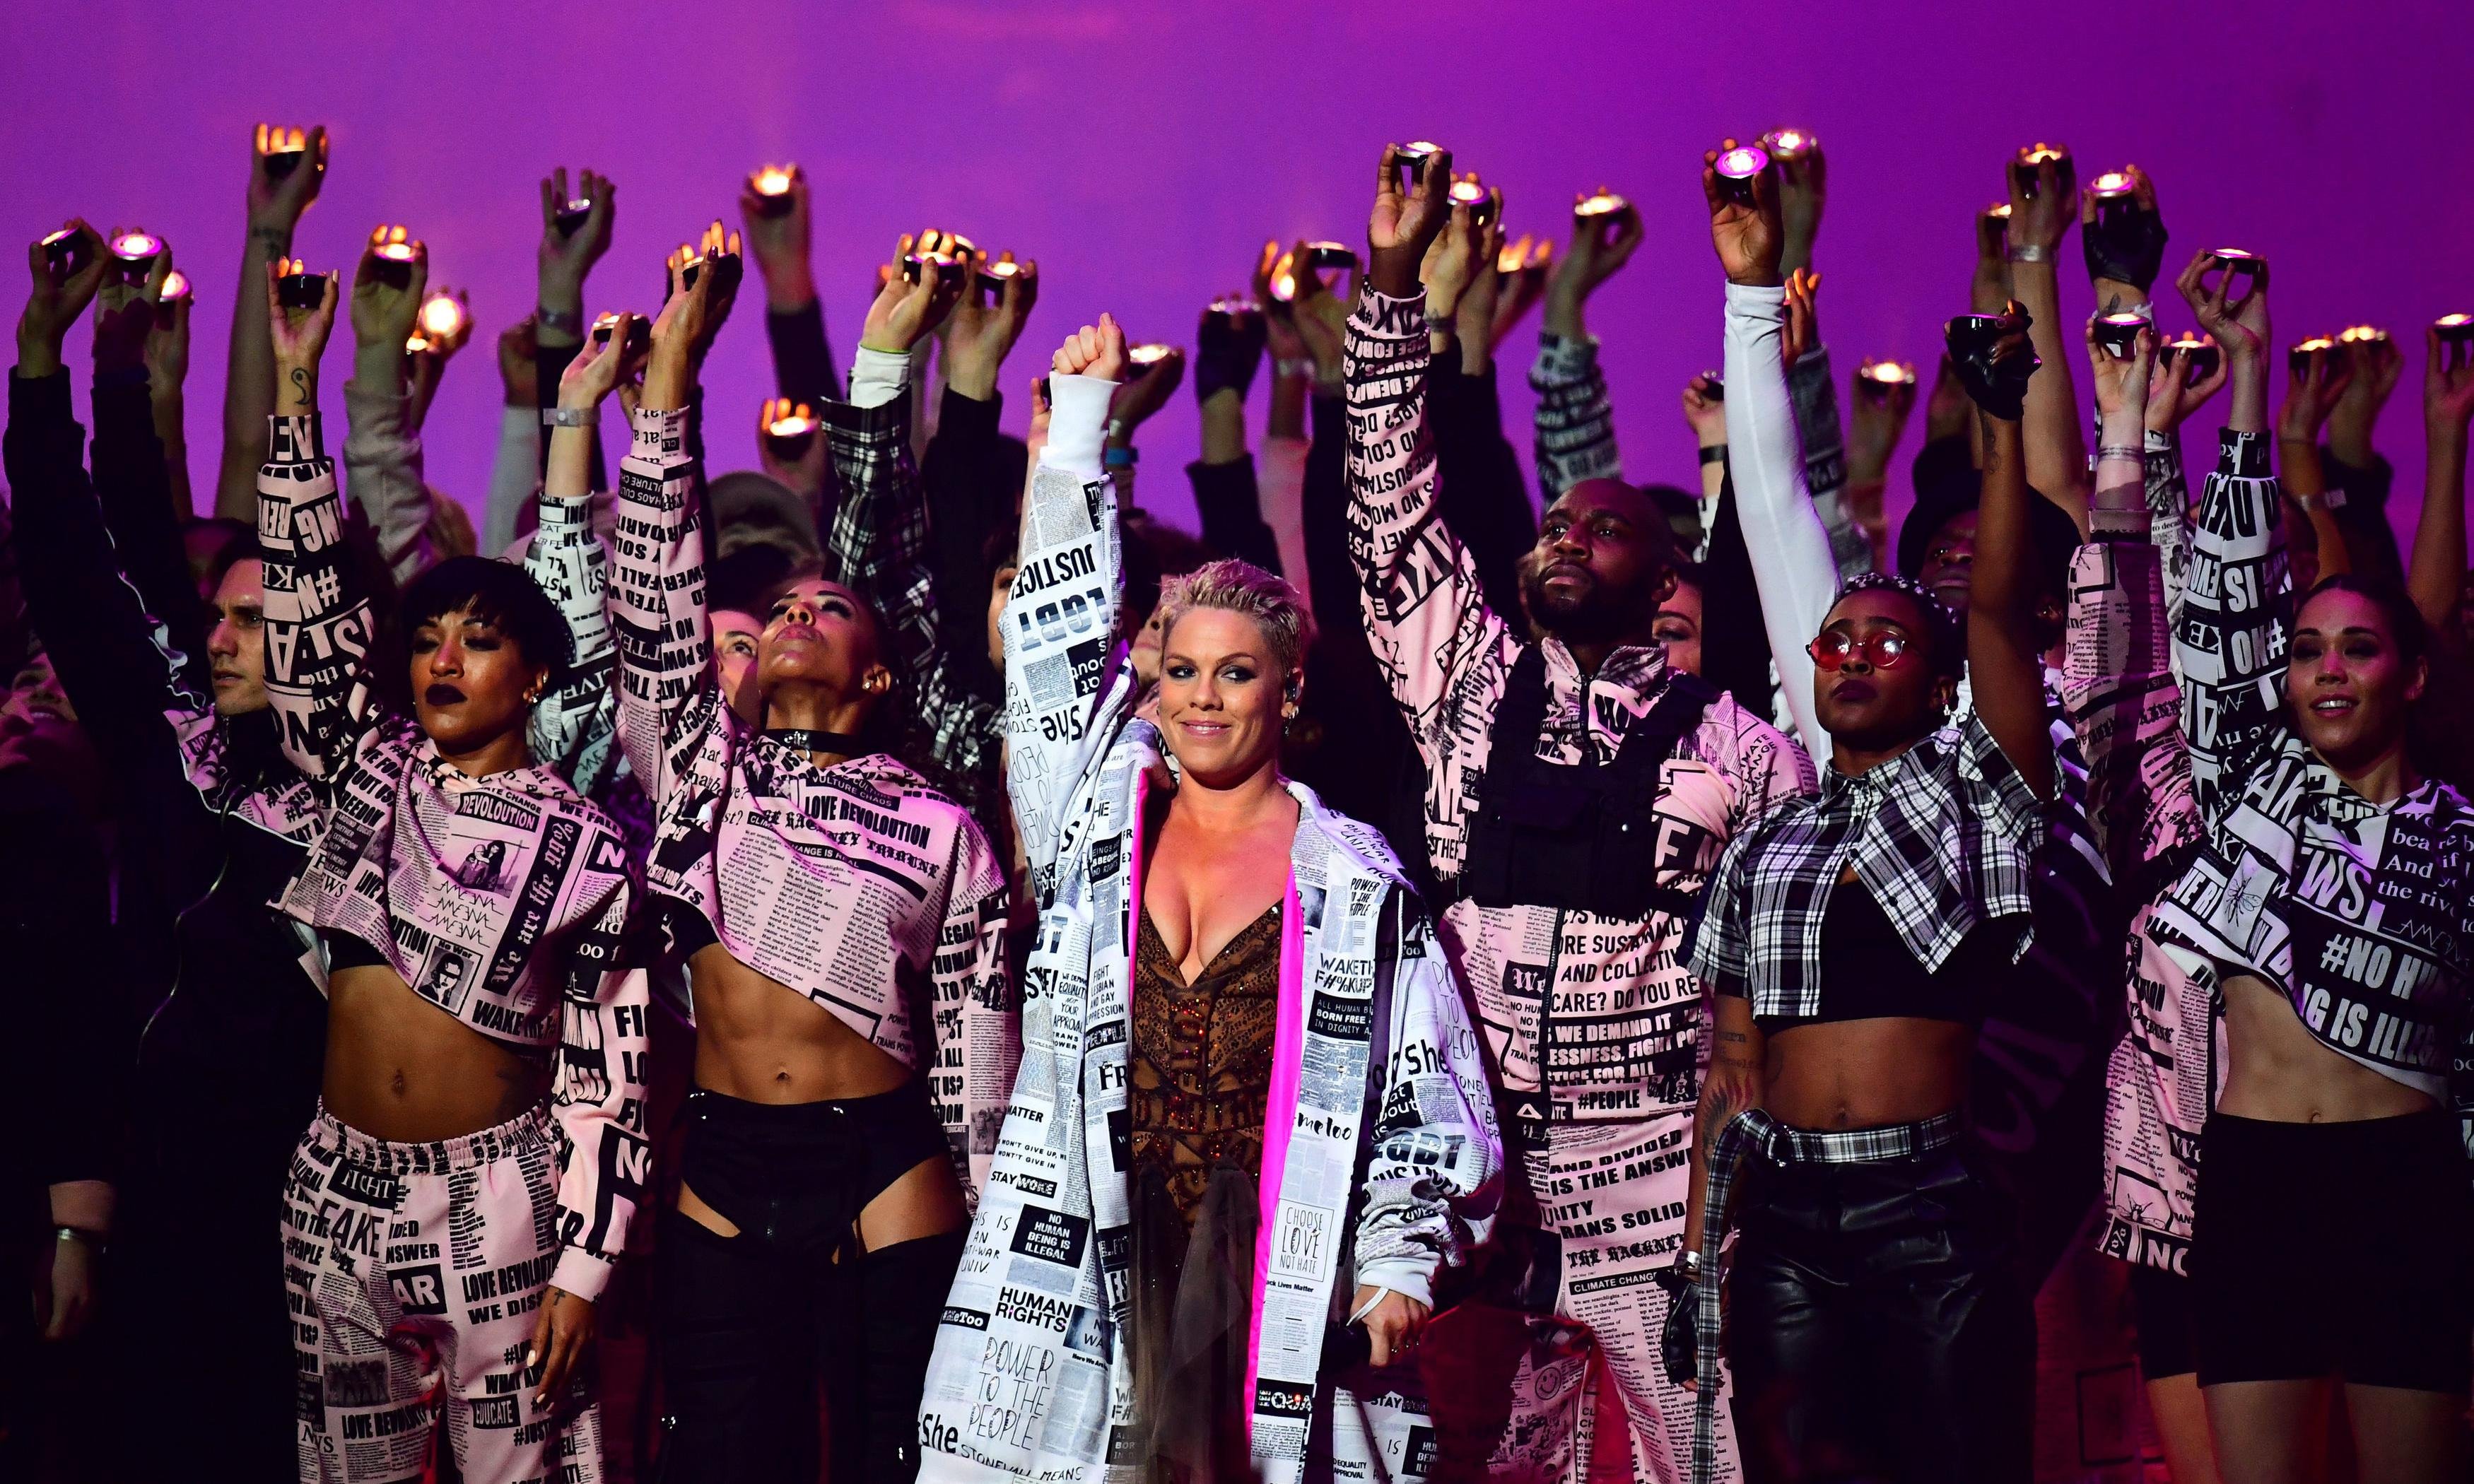 From Pink's medley to Jess Glynne's makeup: every Brits 2019 performance reviewed